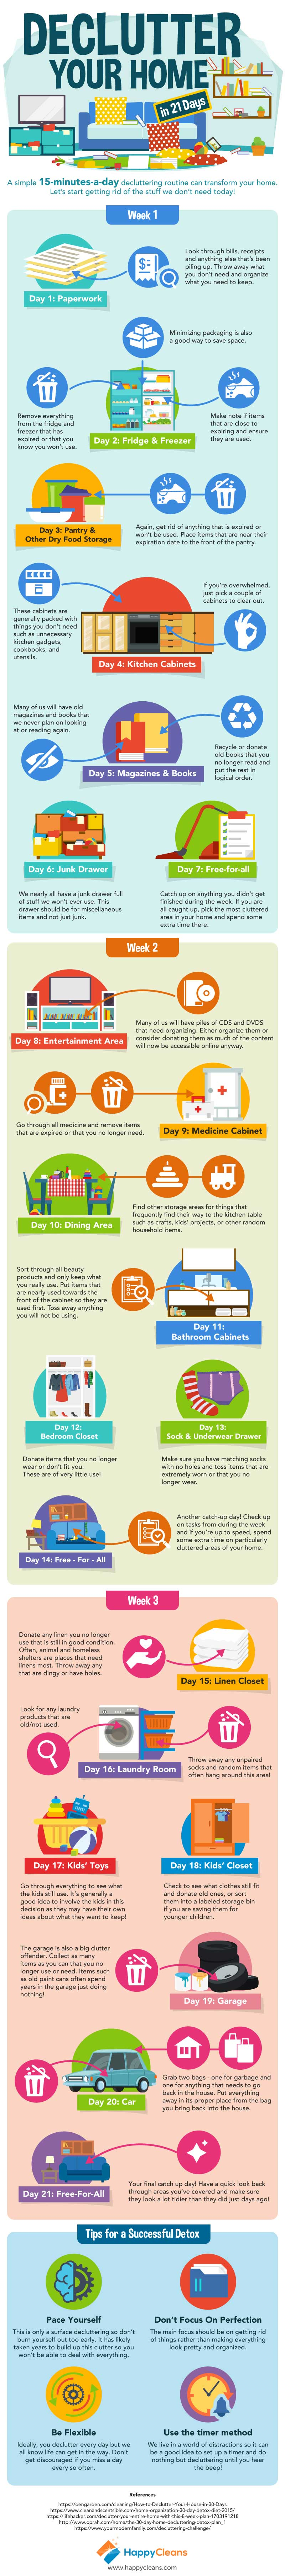 Declutter Your Home In 21 Days Infographic